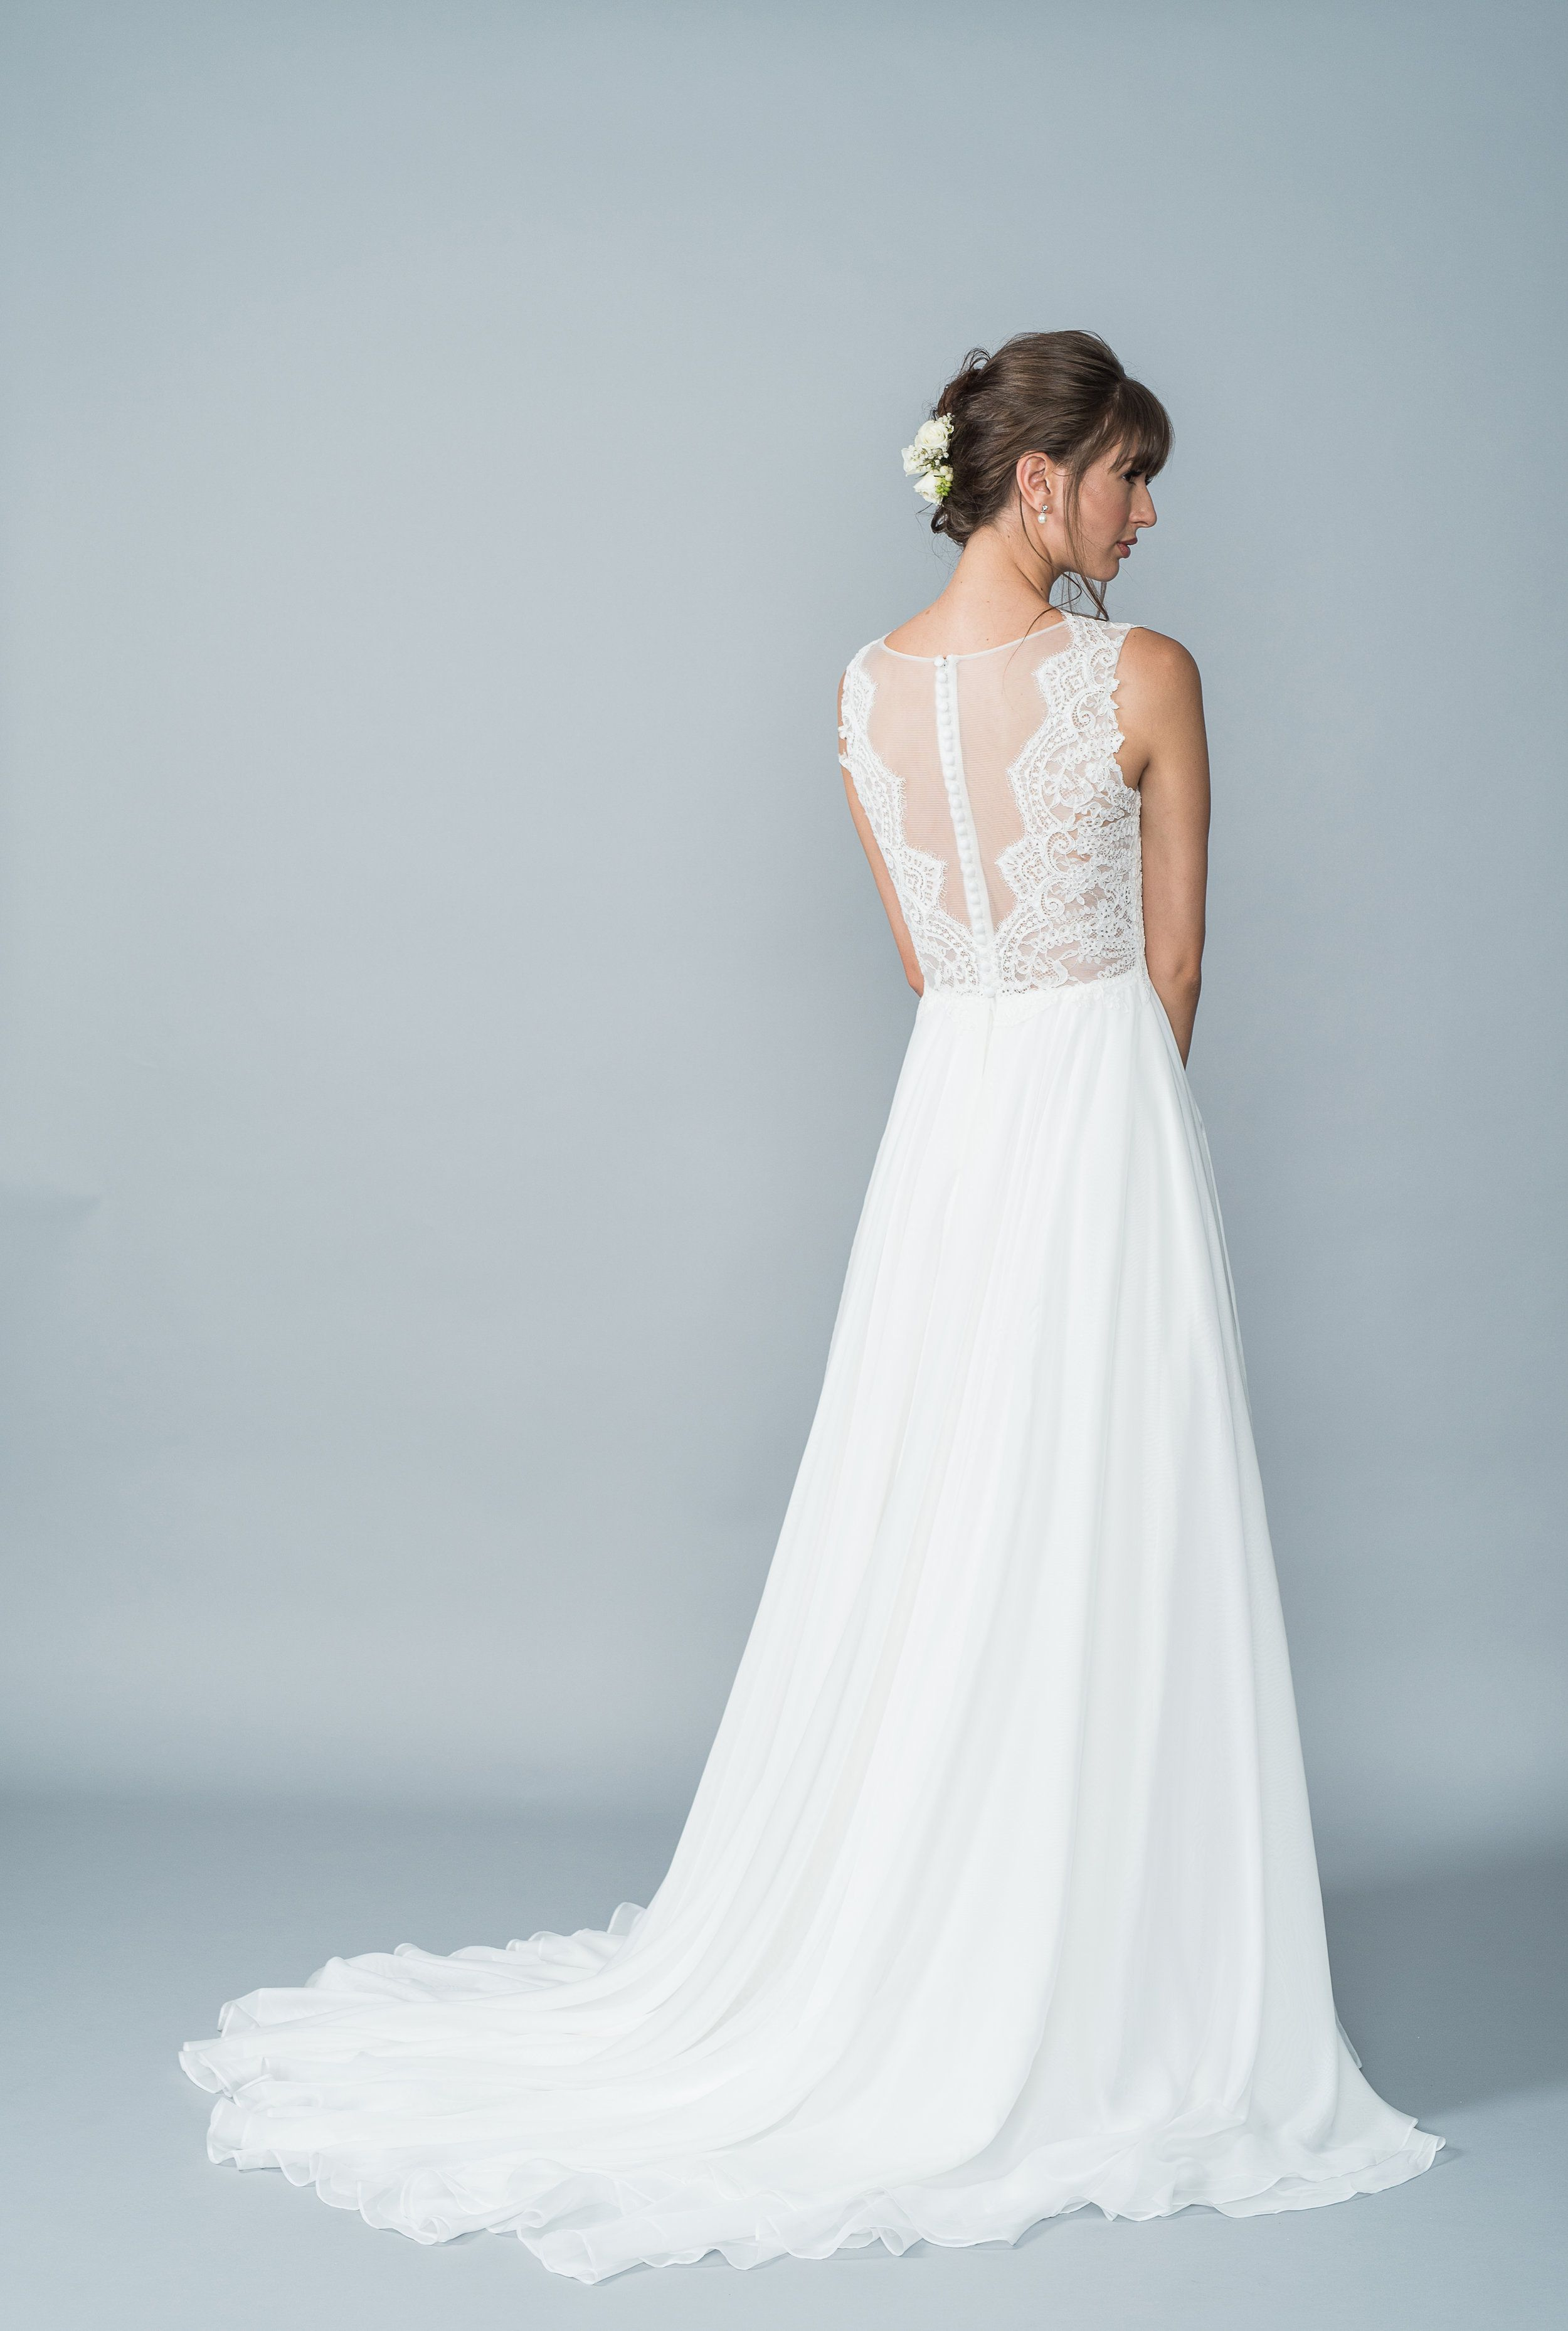 Lis Simon | wedding dresses | Pinterest